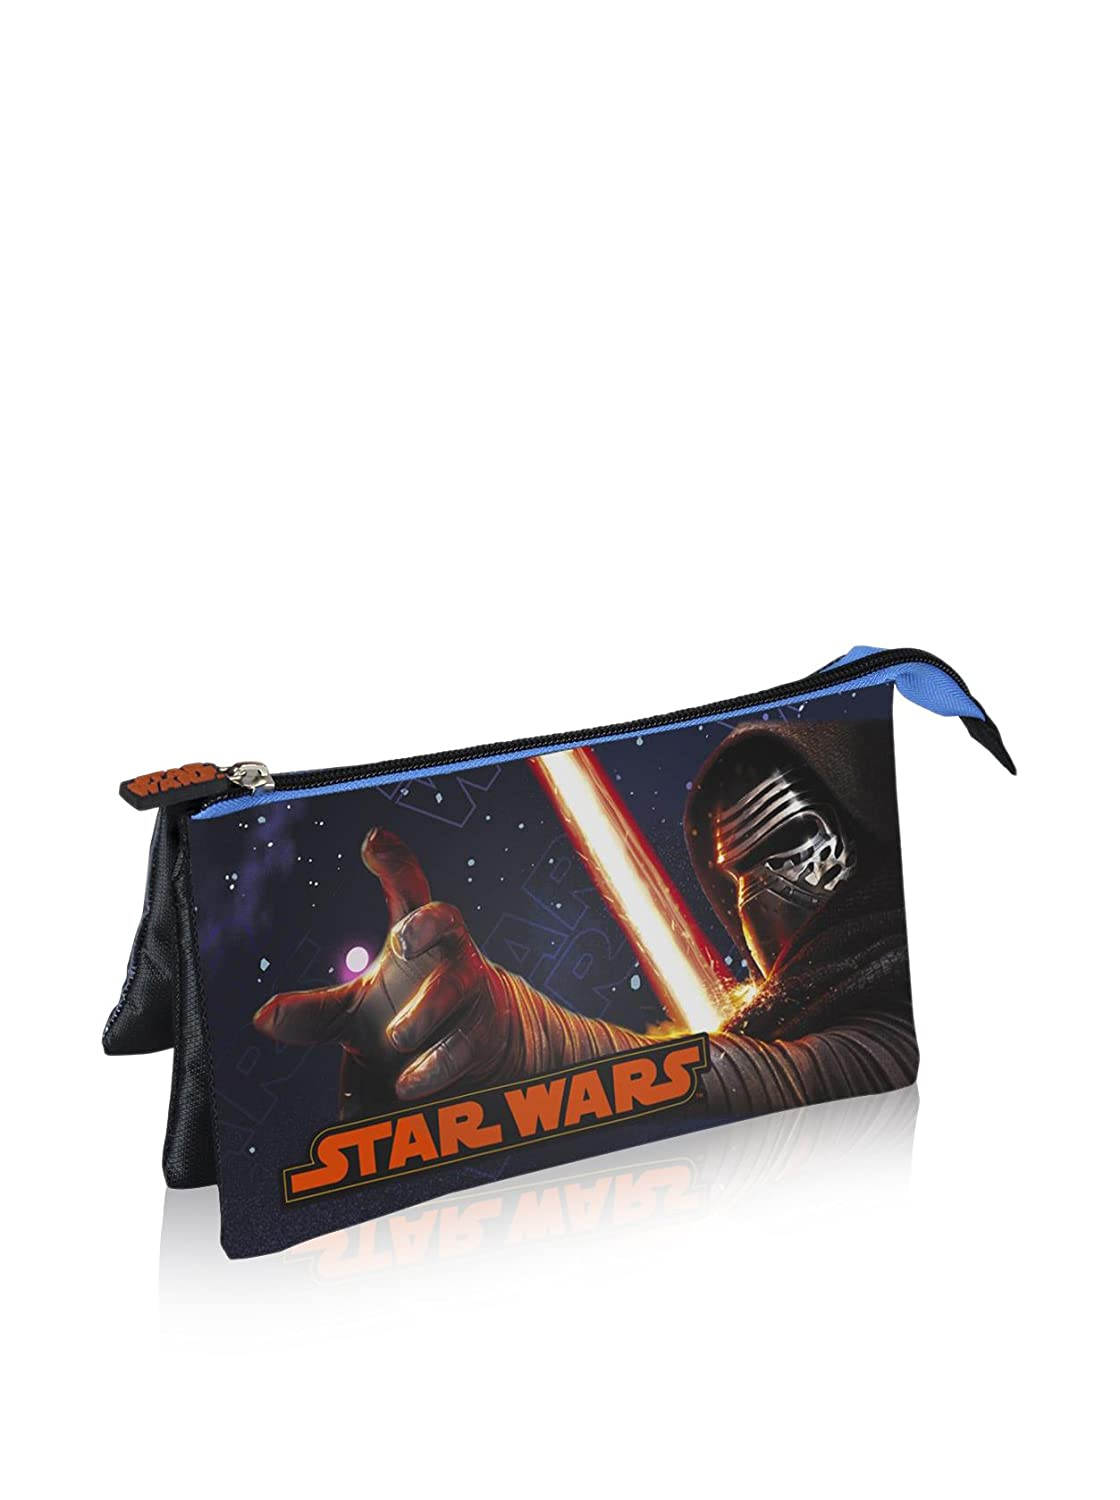 STAR WARS VII Estuche Negro: Amazon.es: Equipaje